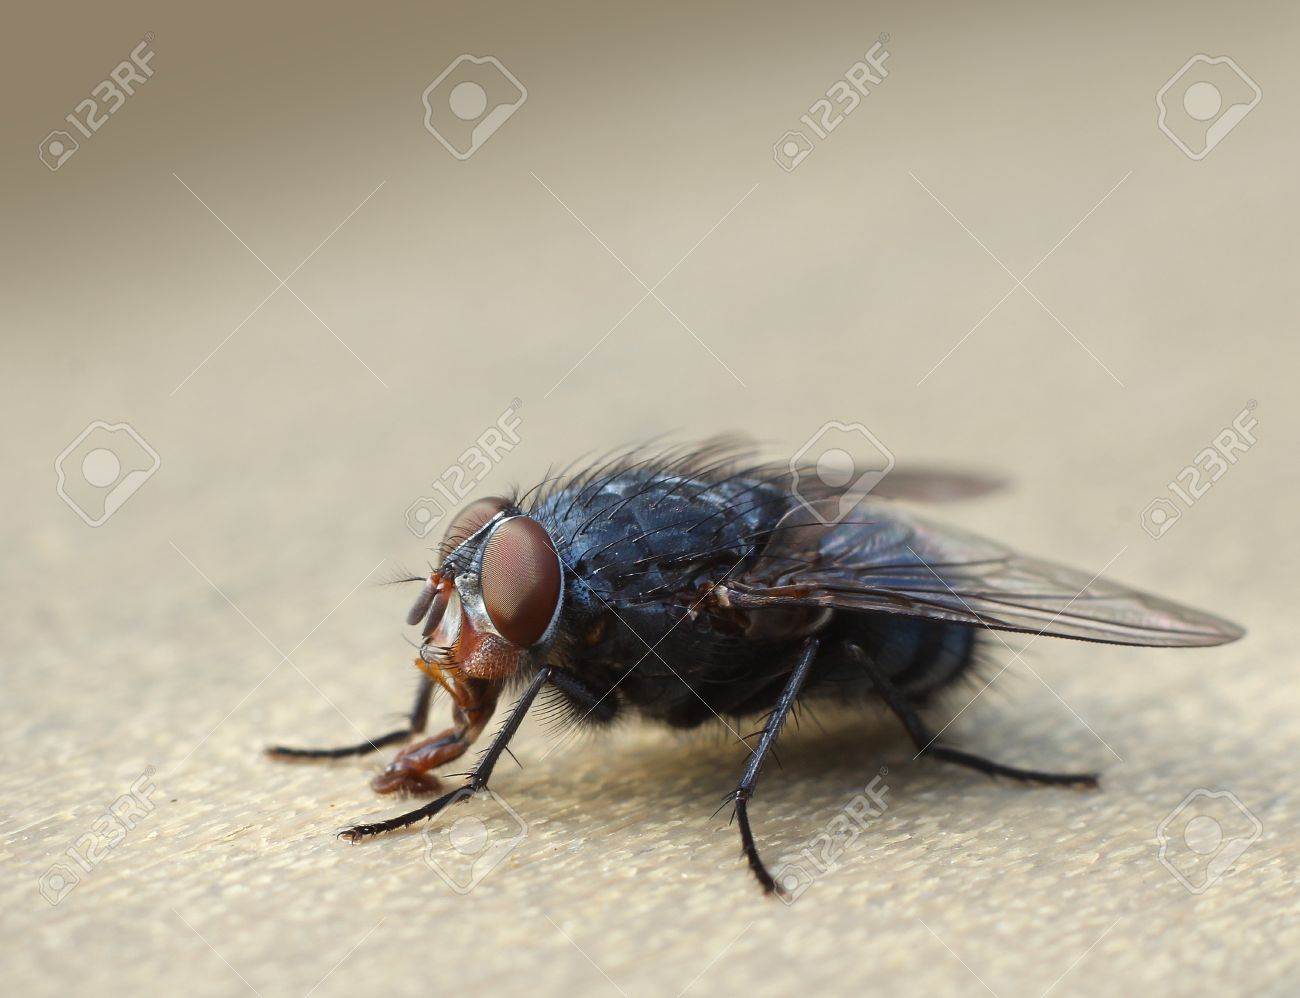 Common Housefly Macro Insect Bug Closeup Stock Photo, Picture And ...